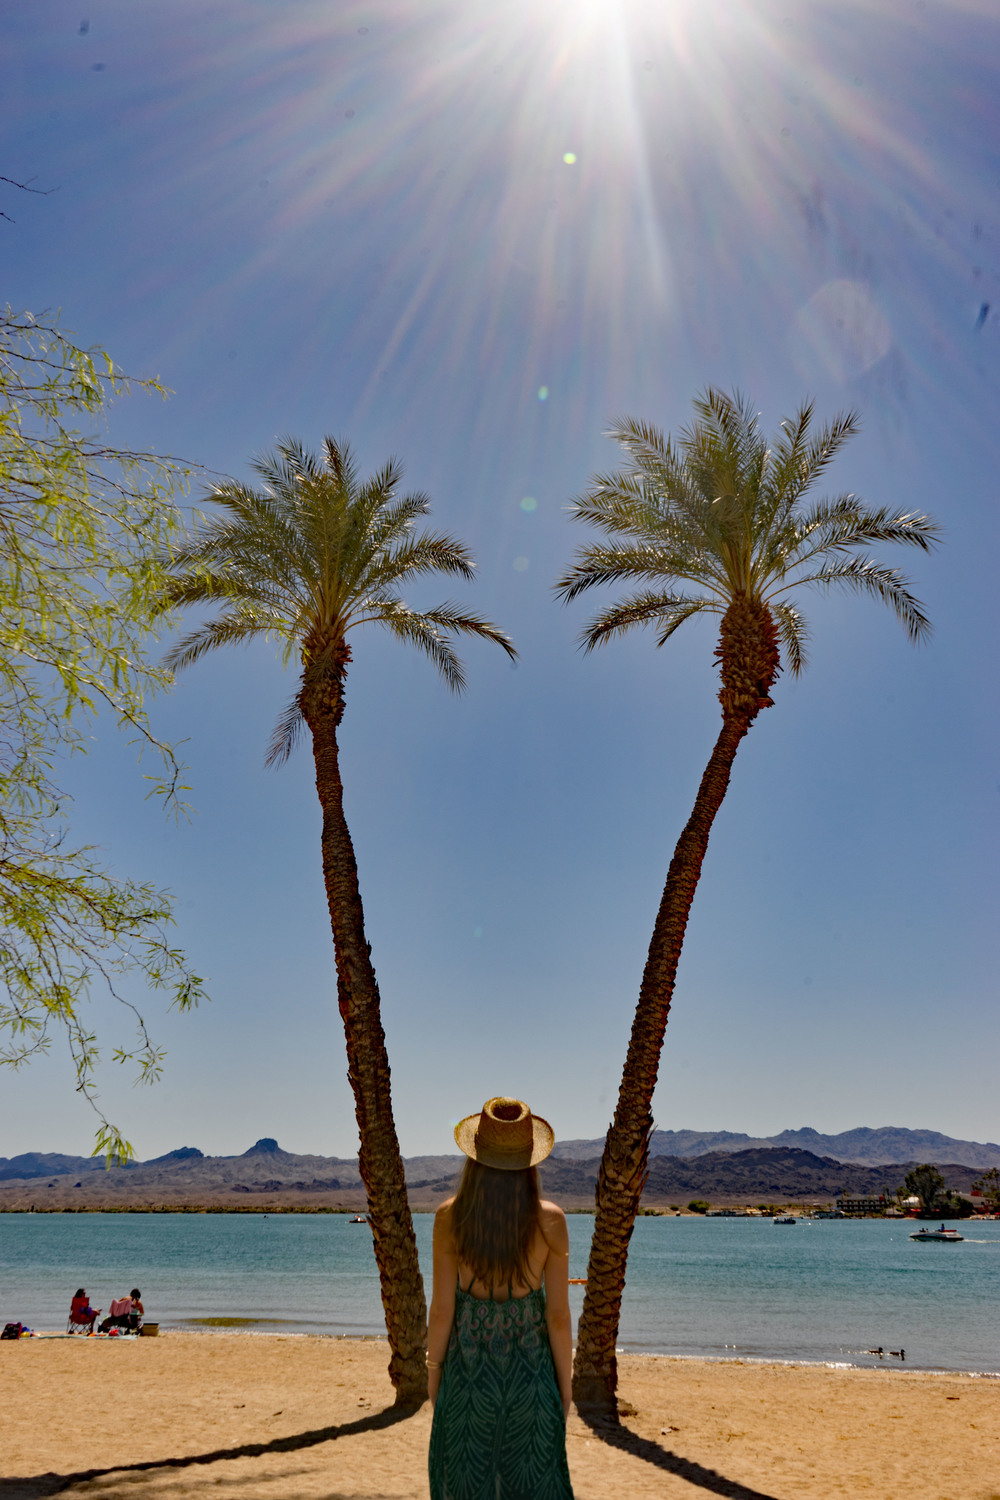 Exploring Lake Havasu City, Arizona